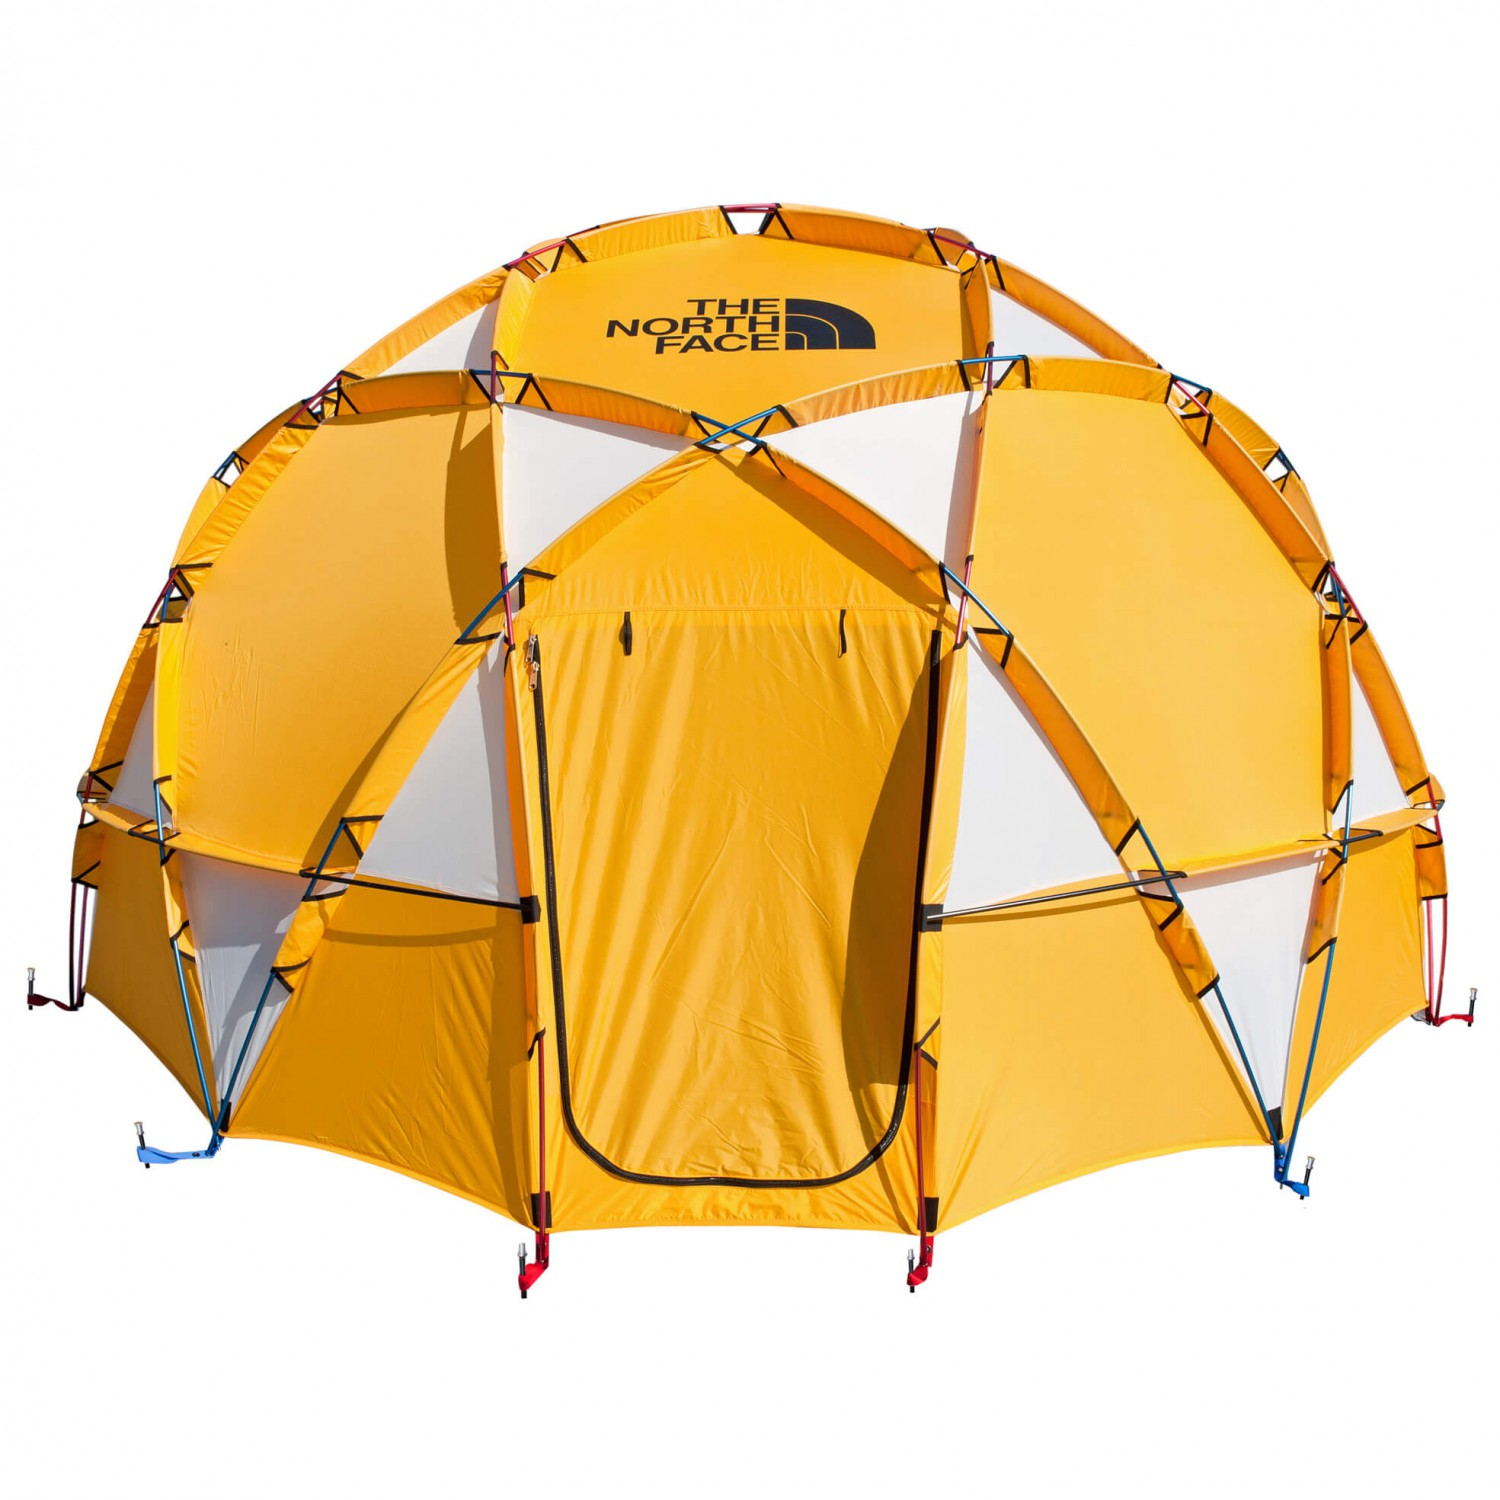 ... The North Face - 2-Meter Dome - 8-Personen-Expeditionszelt ...  sc 1 st  Alpinetrek & The North Face 2-Meter Dome - 8-Personen-Expeditionszelt | Free UK ...